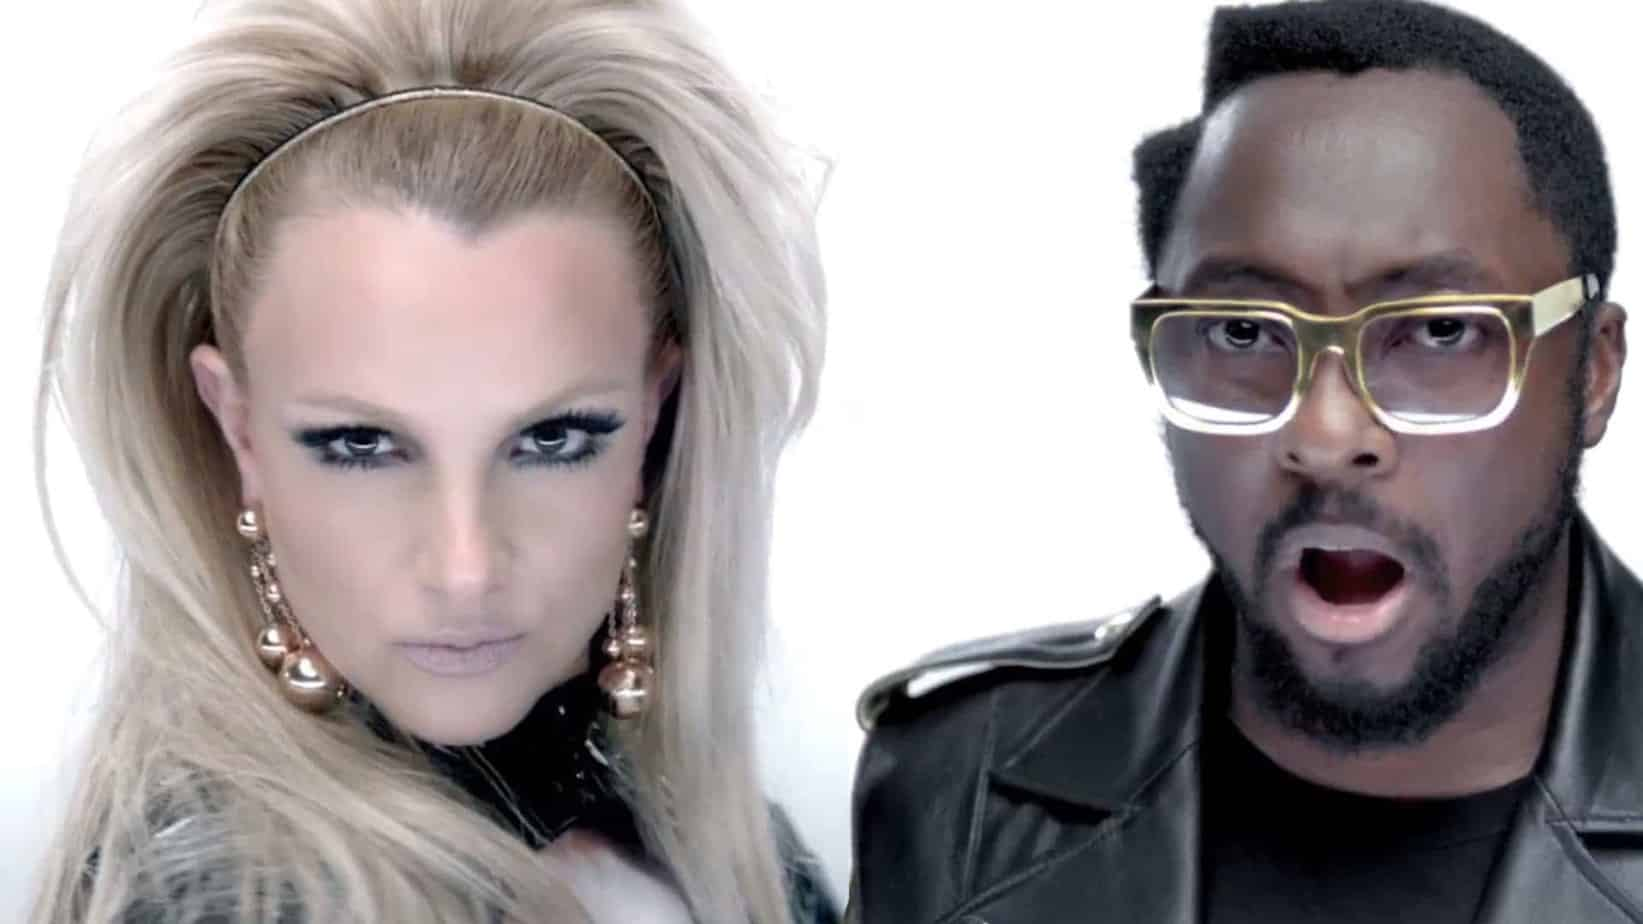 Photo of Tulisa vince la causa contro Britney Spears e will.i.am per plagio